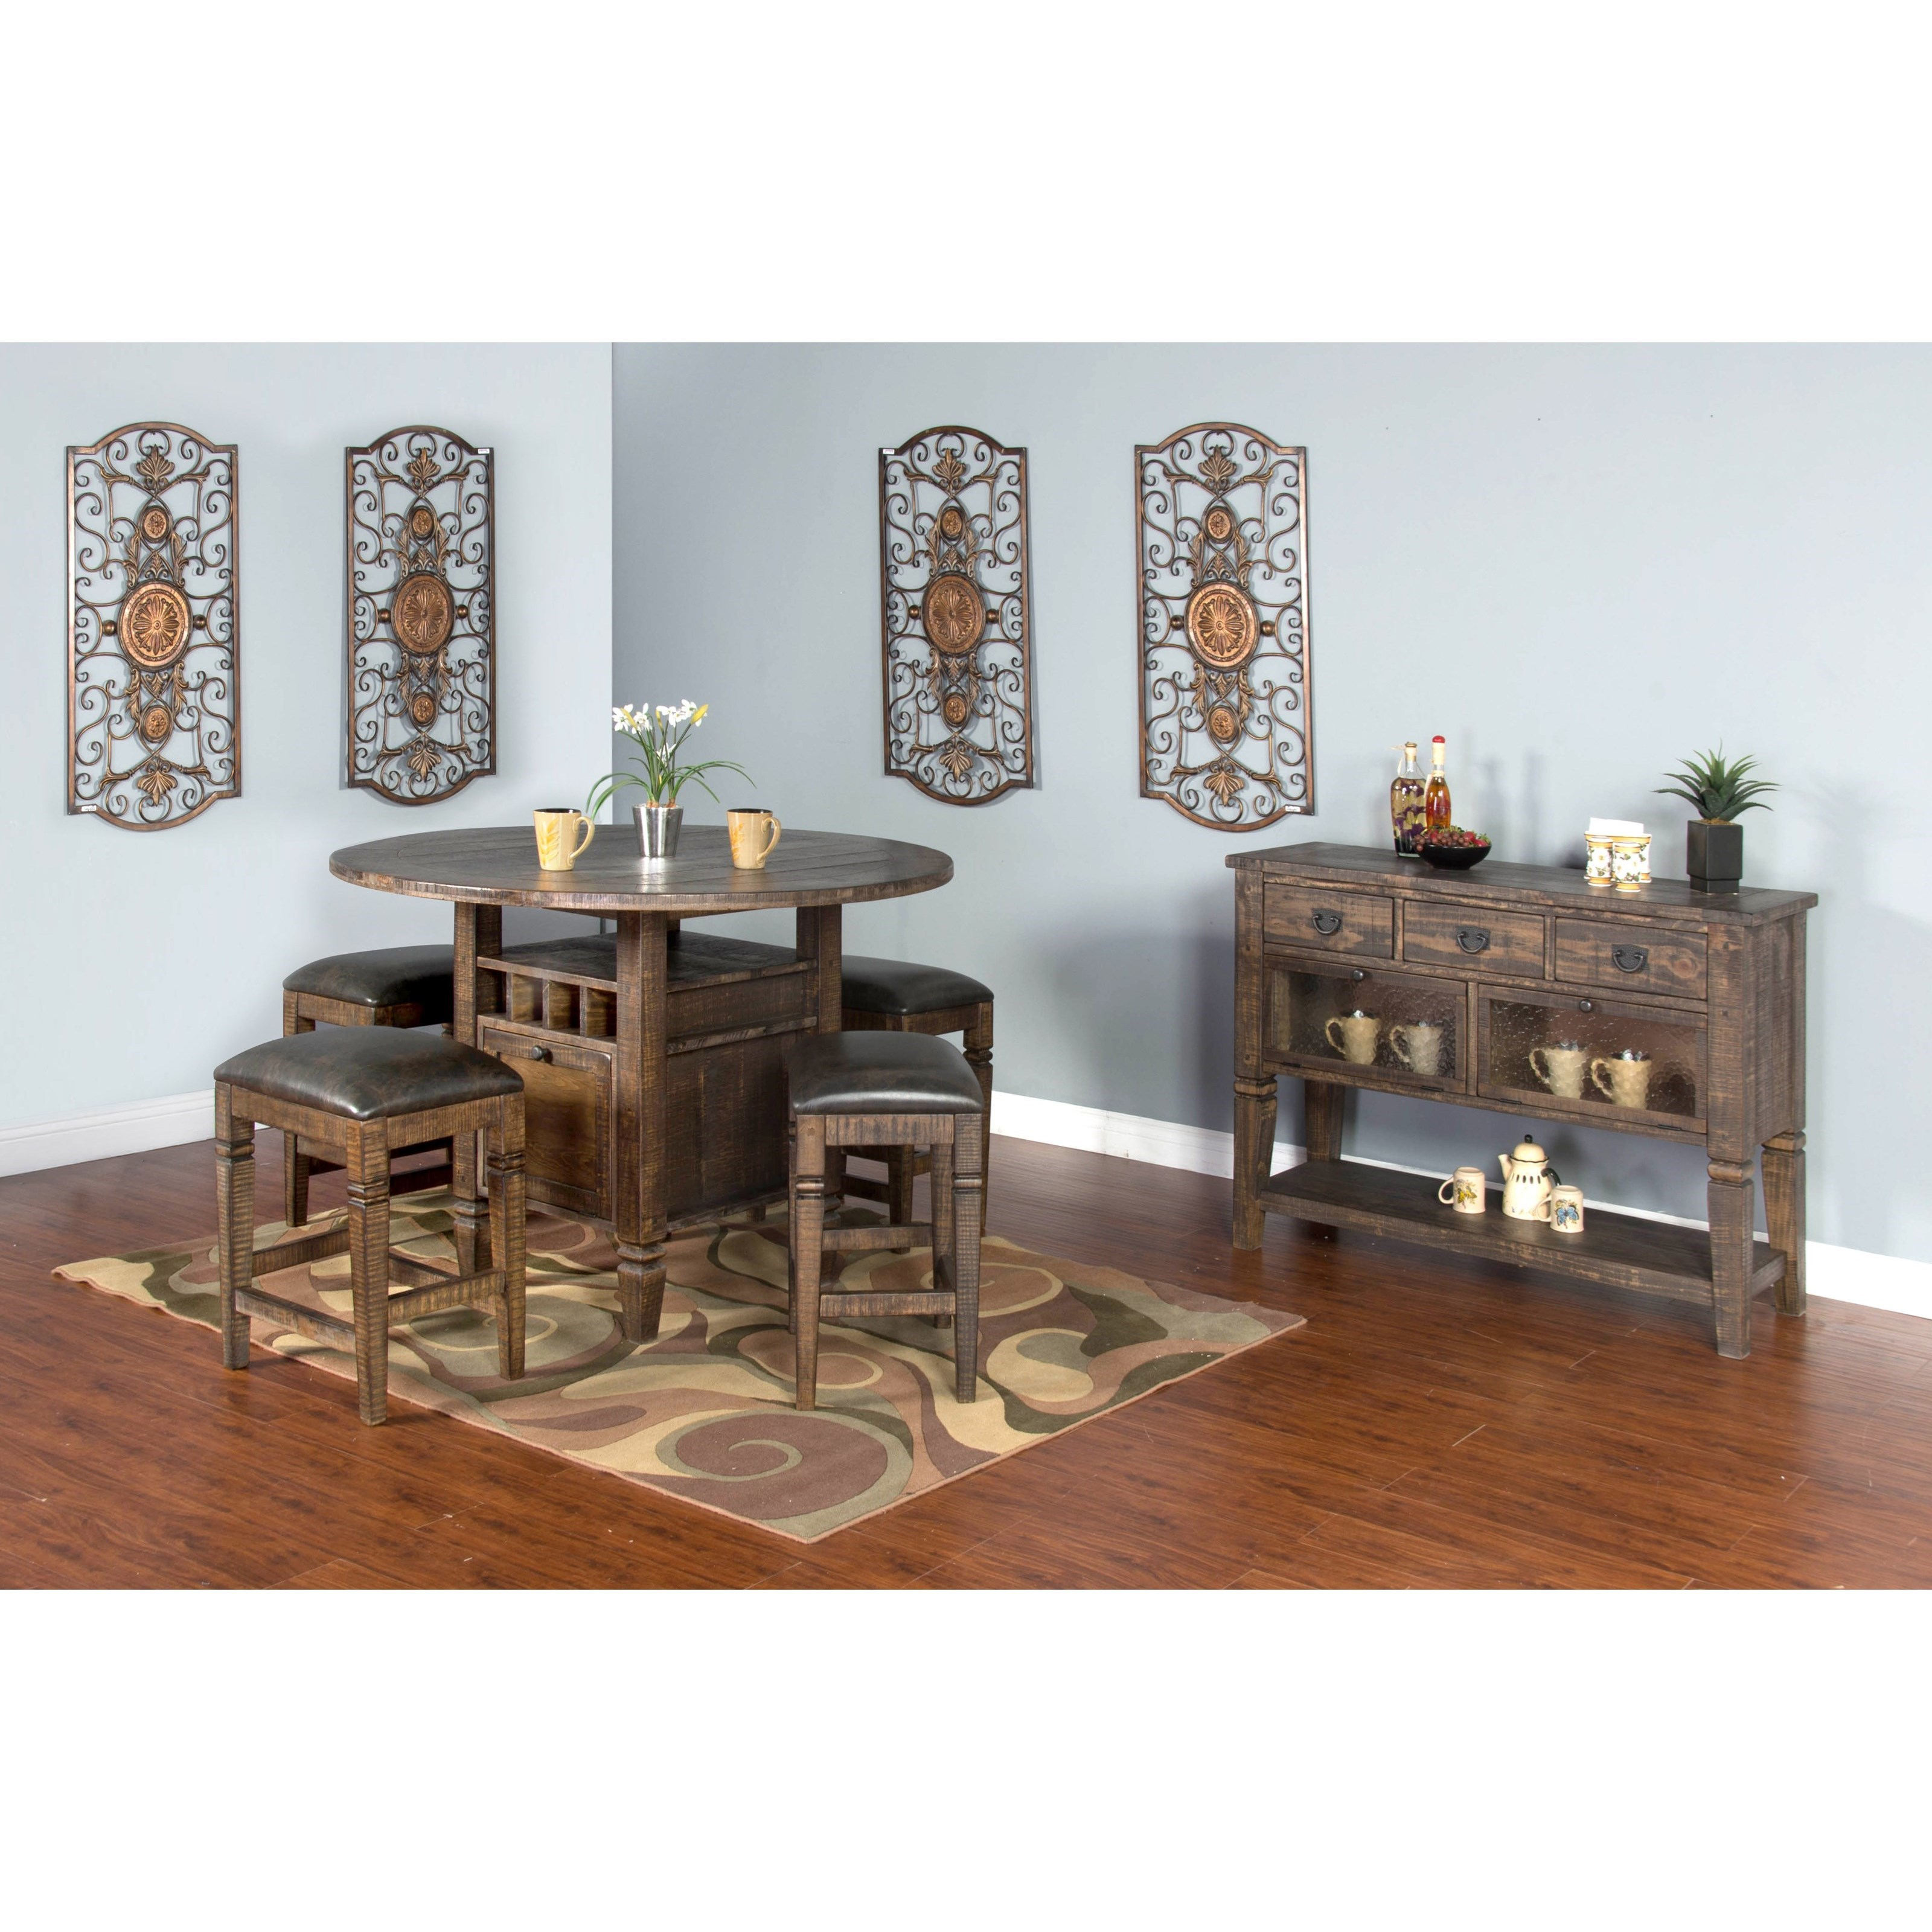 Sunny Designs Homestead 5 Piece Counter Height Table Set